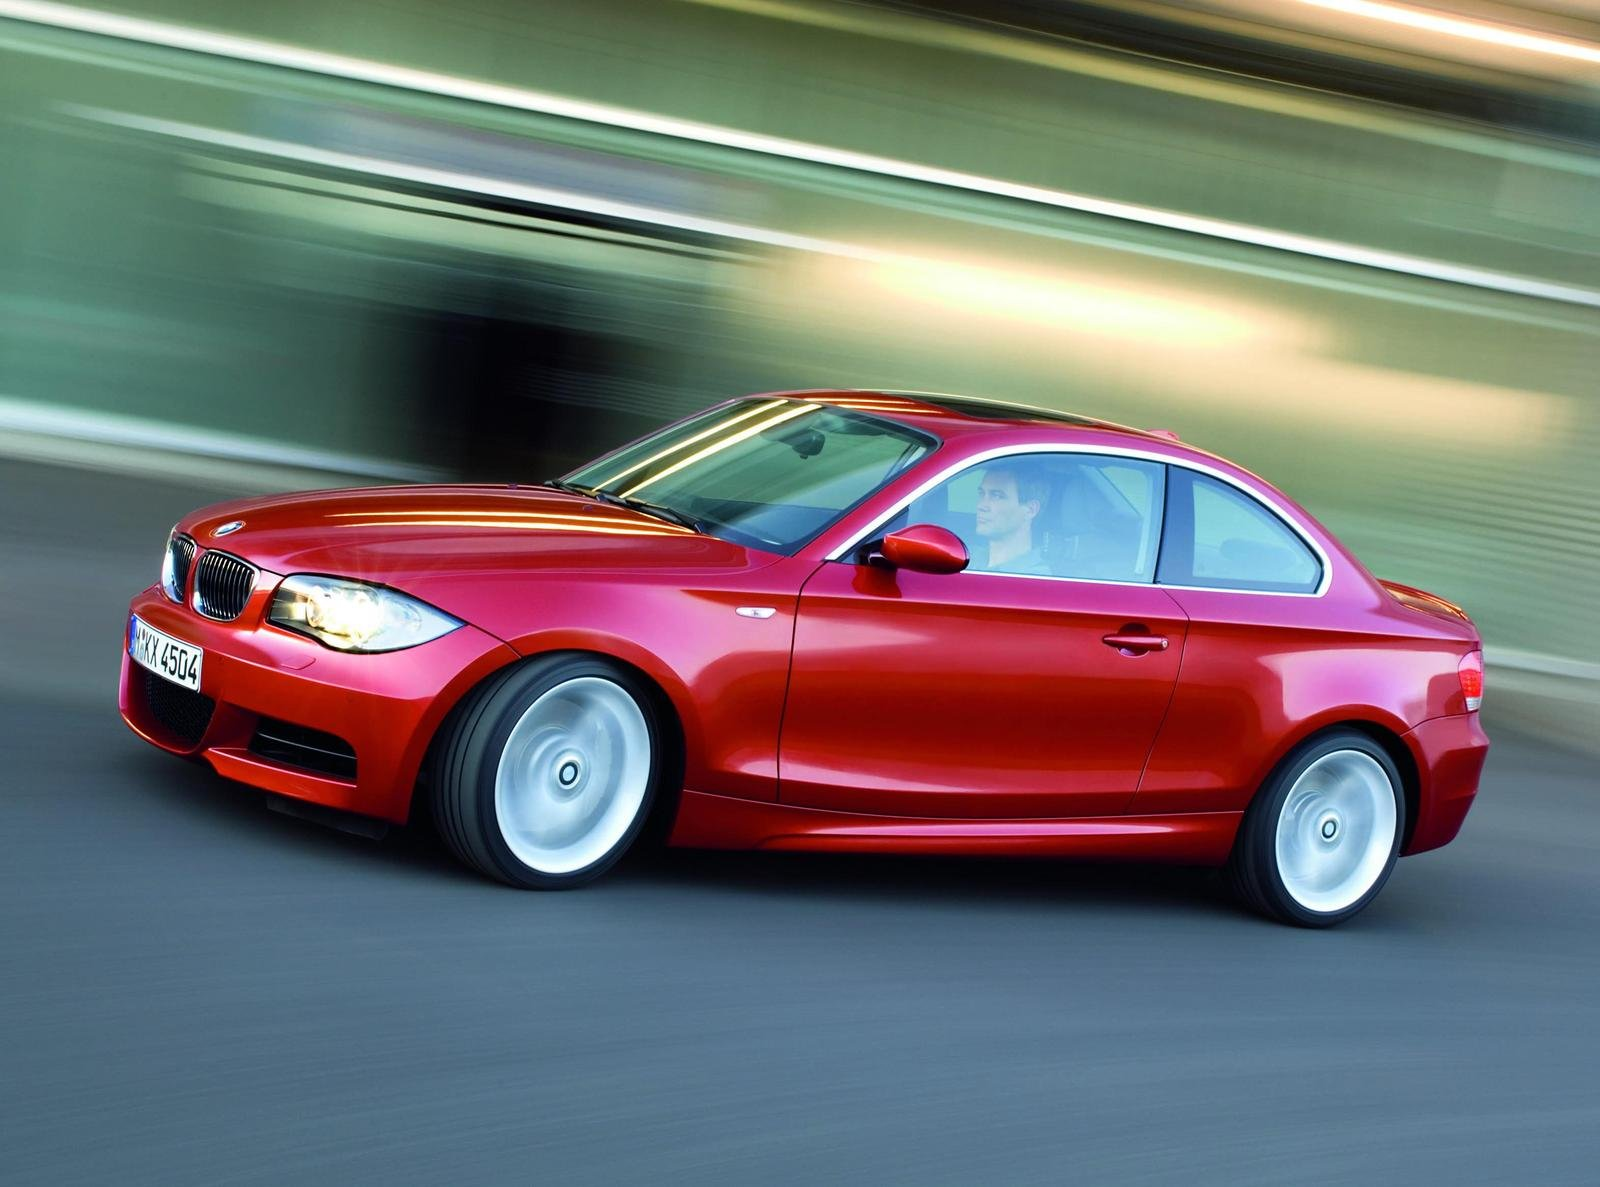 bmw 1 series coupe makes us debut pricing announced news top speed. Black Bedroom Furniture Sets. Home Design Ideas